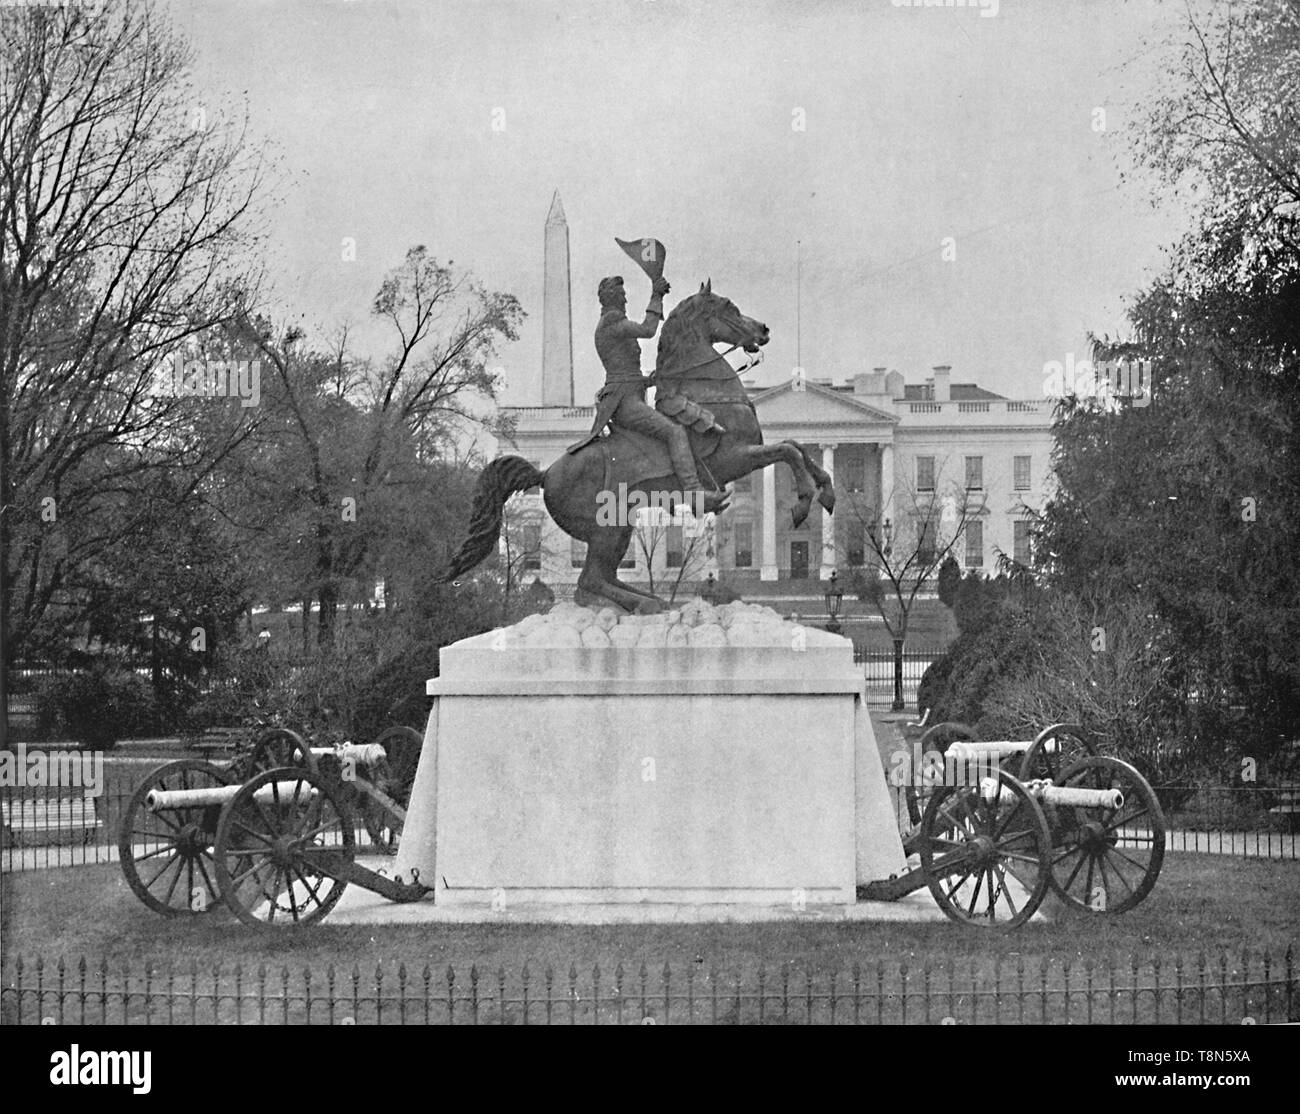 "'Jackson Statue, Lafayette Square, Washington, D.C.', c1897. Bronze equestrian statue by Clark Mills in Lafayette Square, Washington, D.C. commemorating General Andrew Jackson at the Battle of New Orleans. From ""A Tour Through the New World America"", by Prof. Geo. R. Cromwell. [C. N. Greig & Co., London, c1897] - Stock Image"